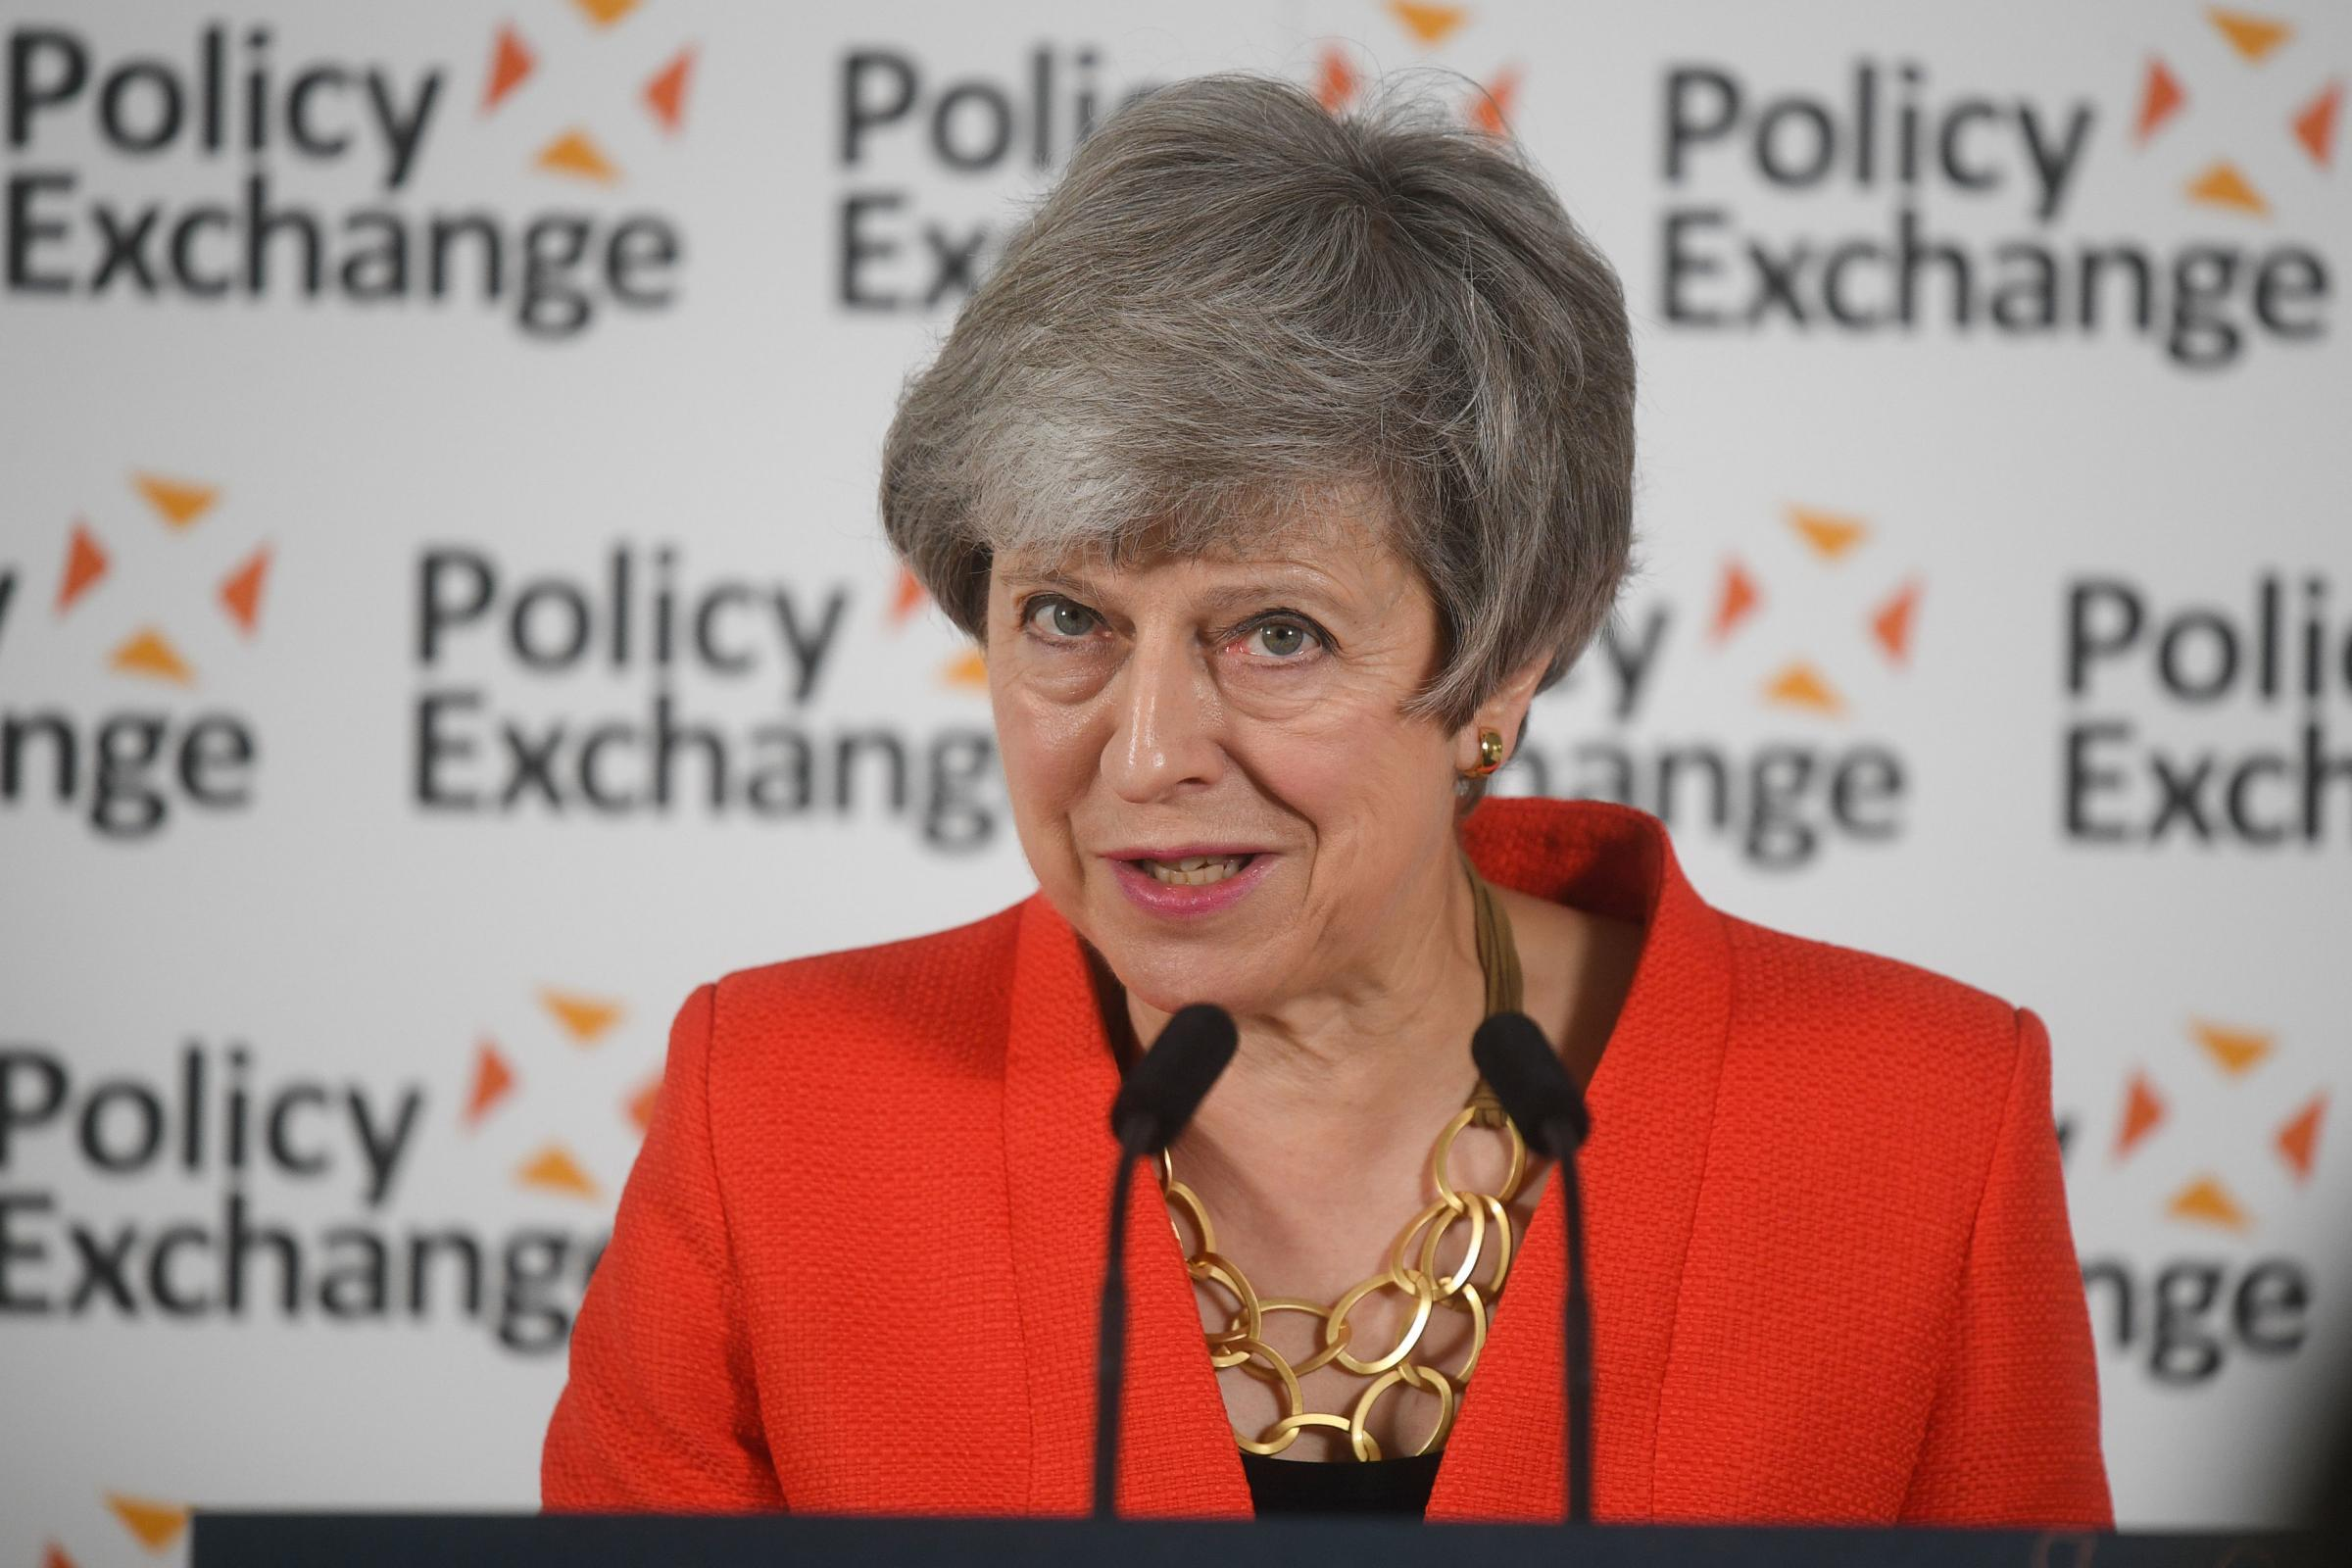 Here are 10 of the most cringeworthy lines from May's Scottish speech